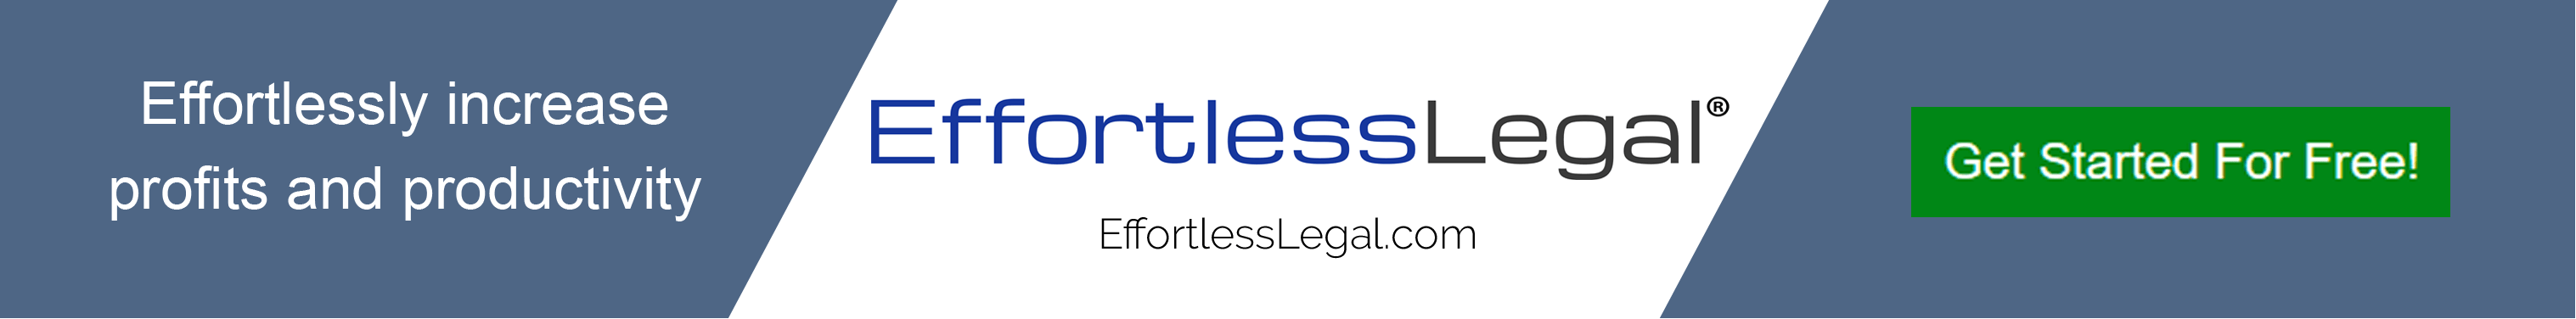 Legal Practice Management Software - EffortlessLegal